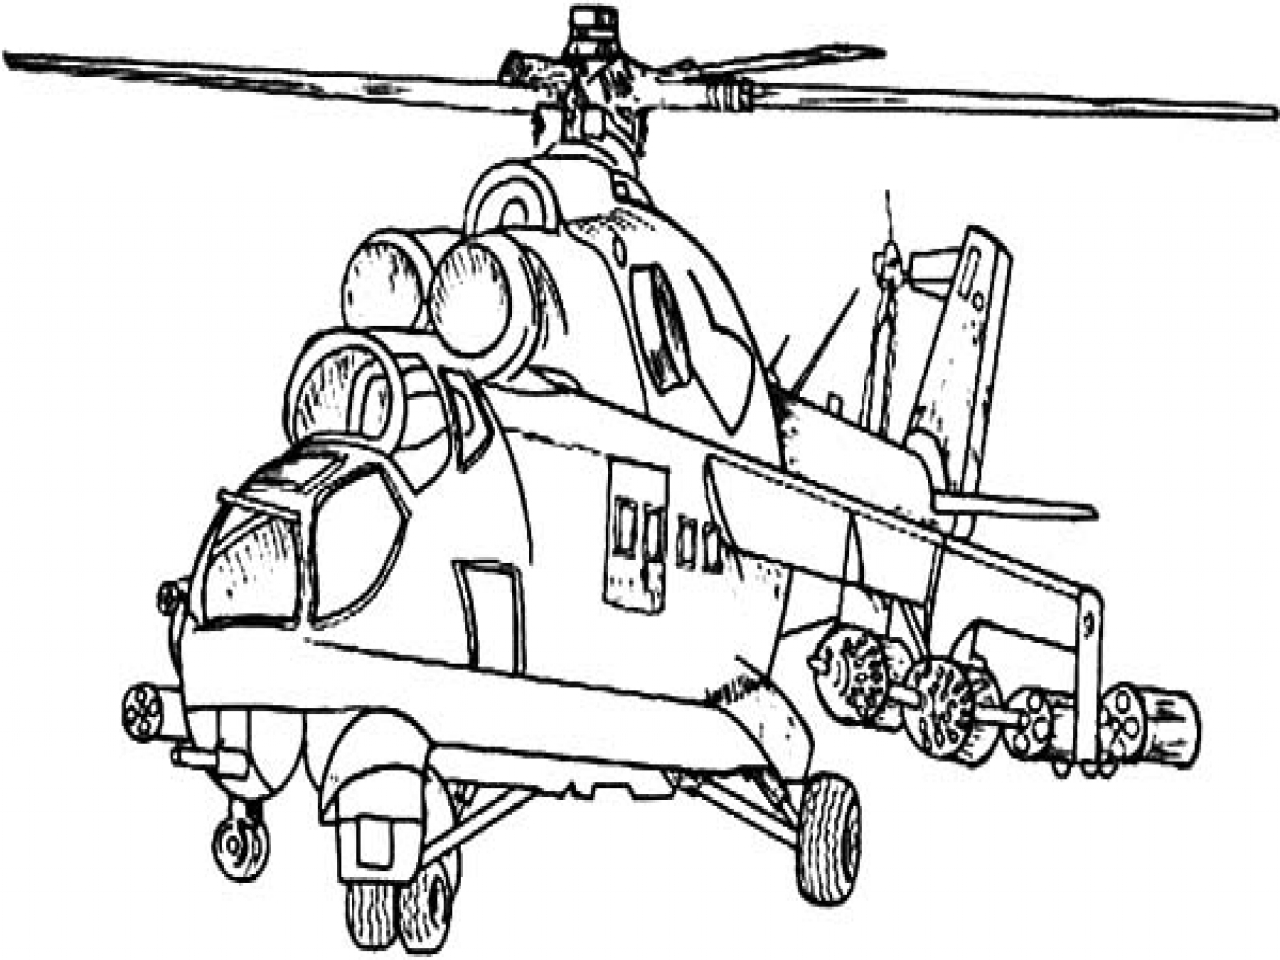 1280x960 Guaranteed Huey Helicopter Coloring Pages Tremendous Drawing